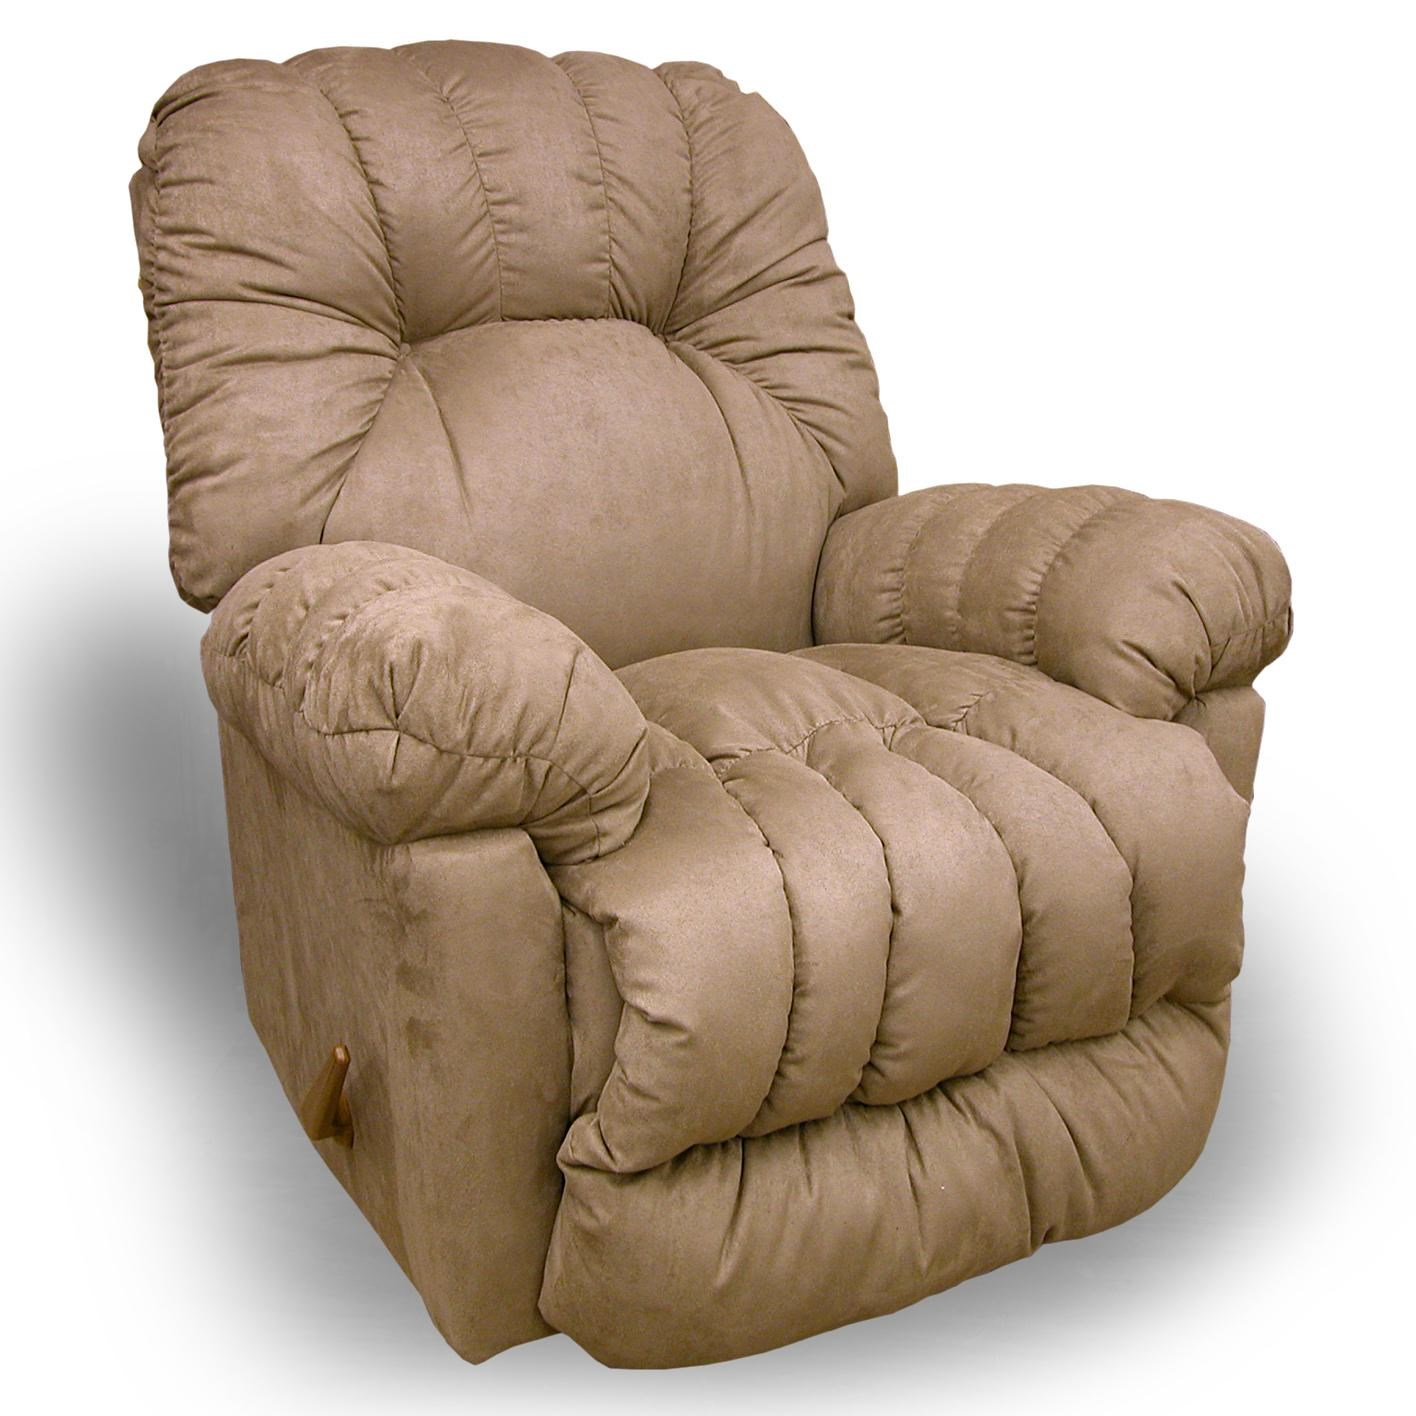 Vendor 411 Recliners Medium Conen Wallhugger Reclining